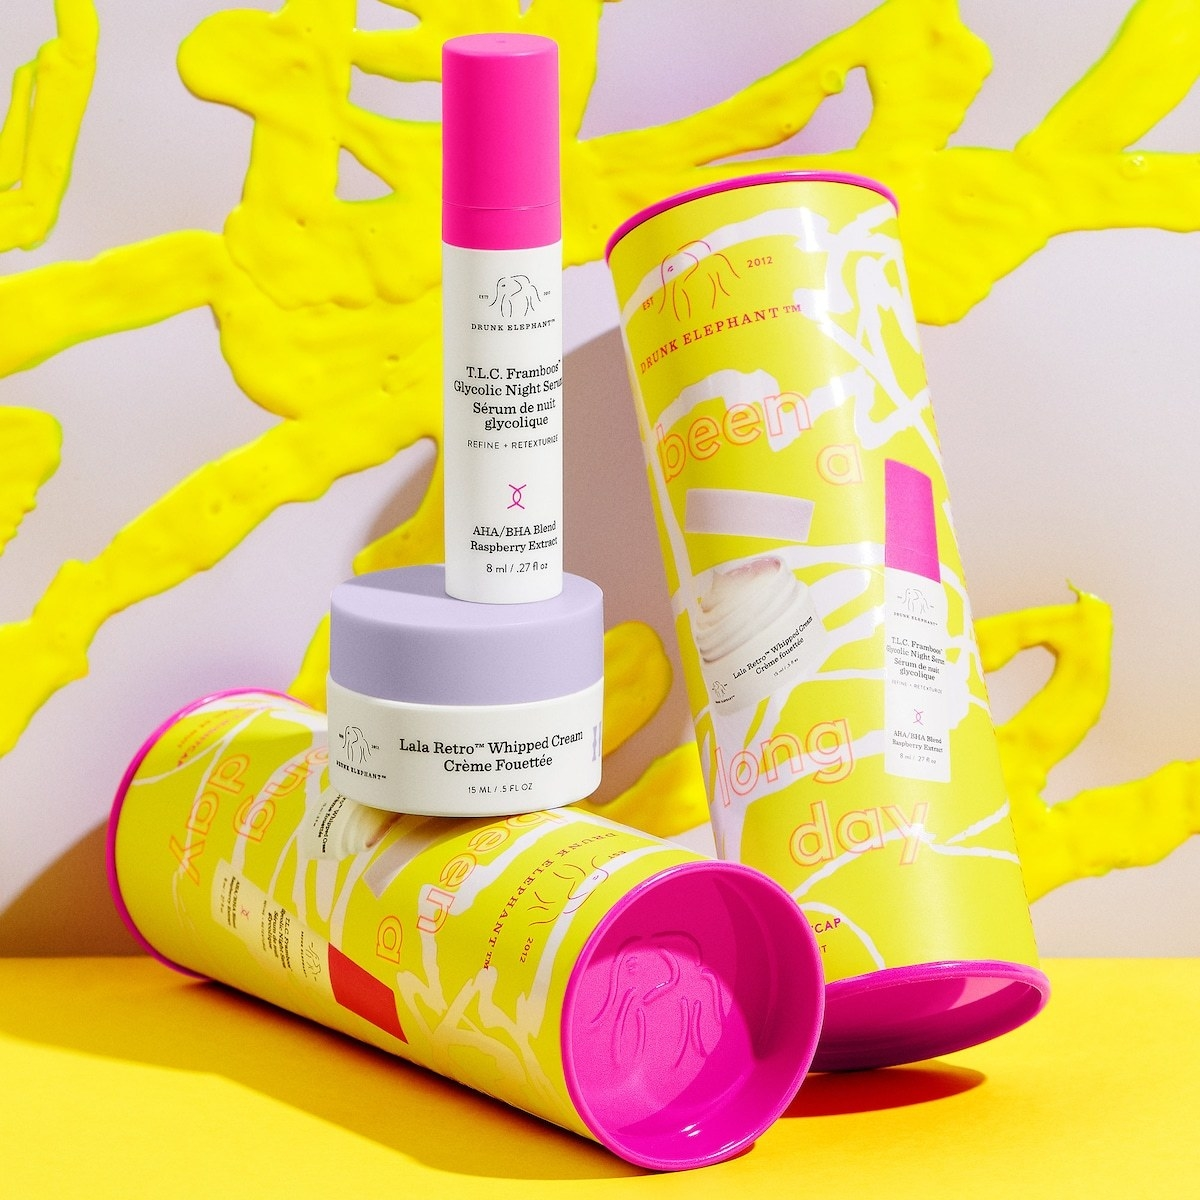 the two products from drunk elephant in mini size next to the yellow and pink tube they are packaged in